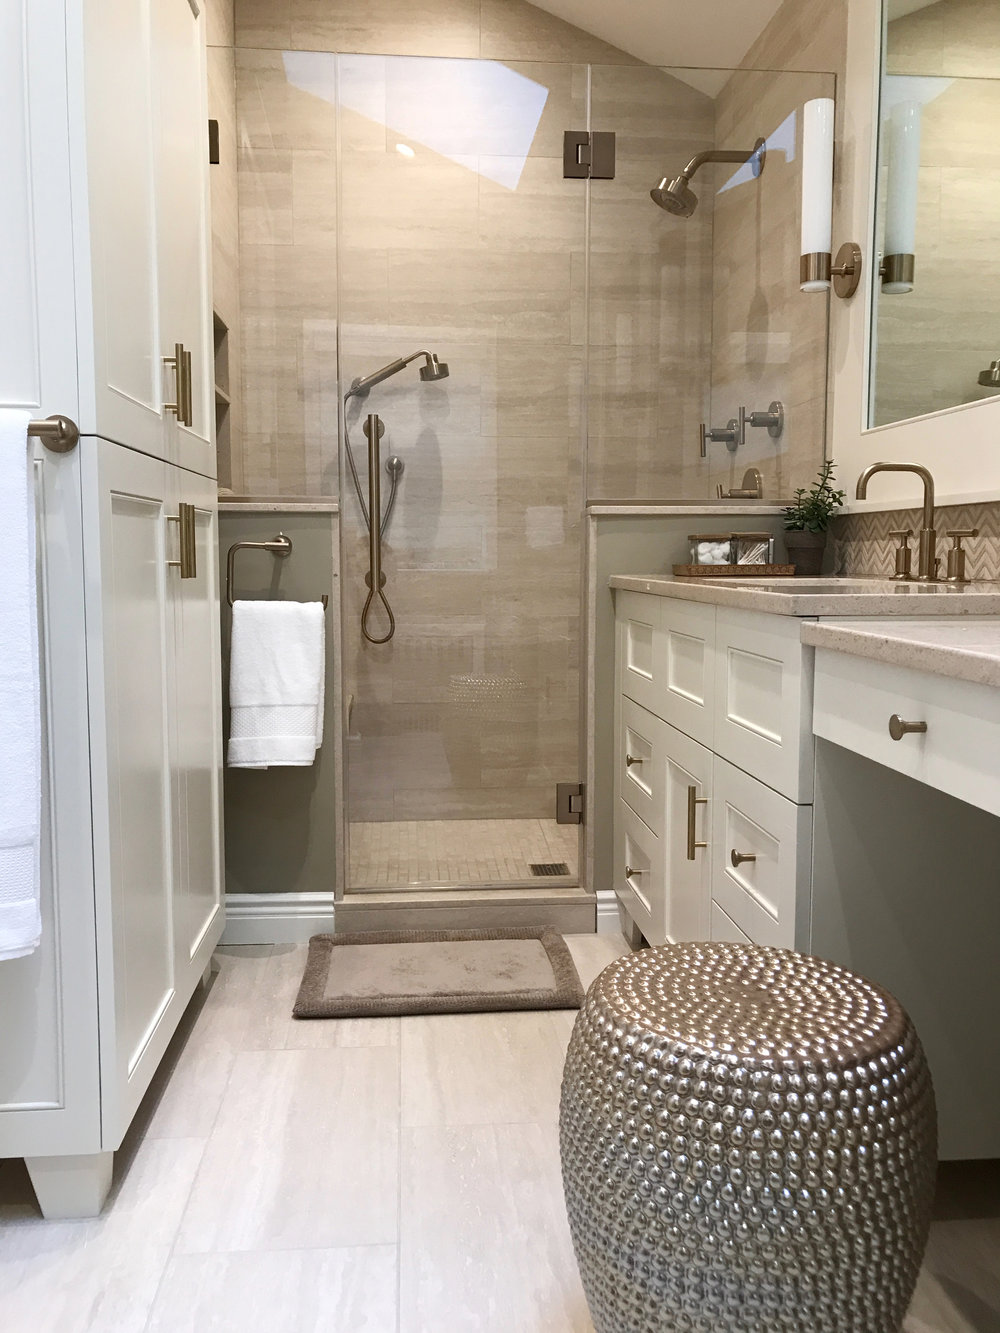 KAM Design_MasterBath_Shower_GlassEnclosure_LinenCloset_Stool_Pleasantville_2017.jpg